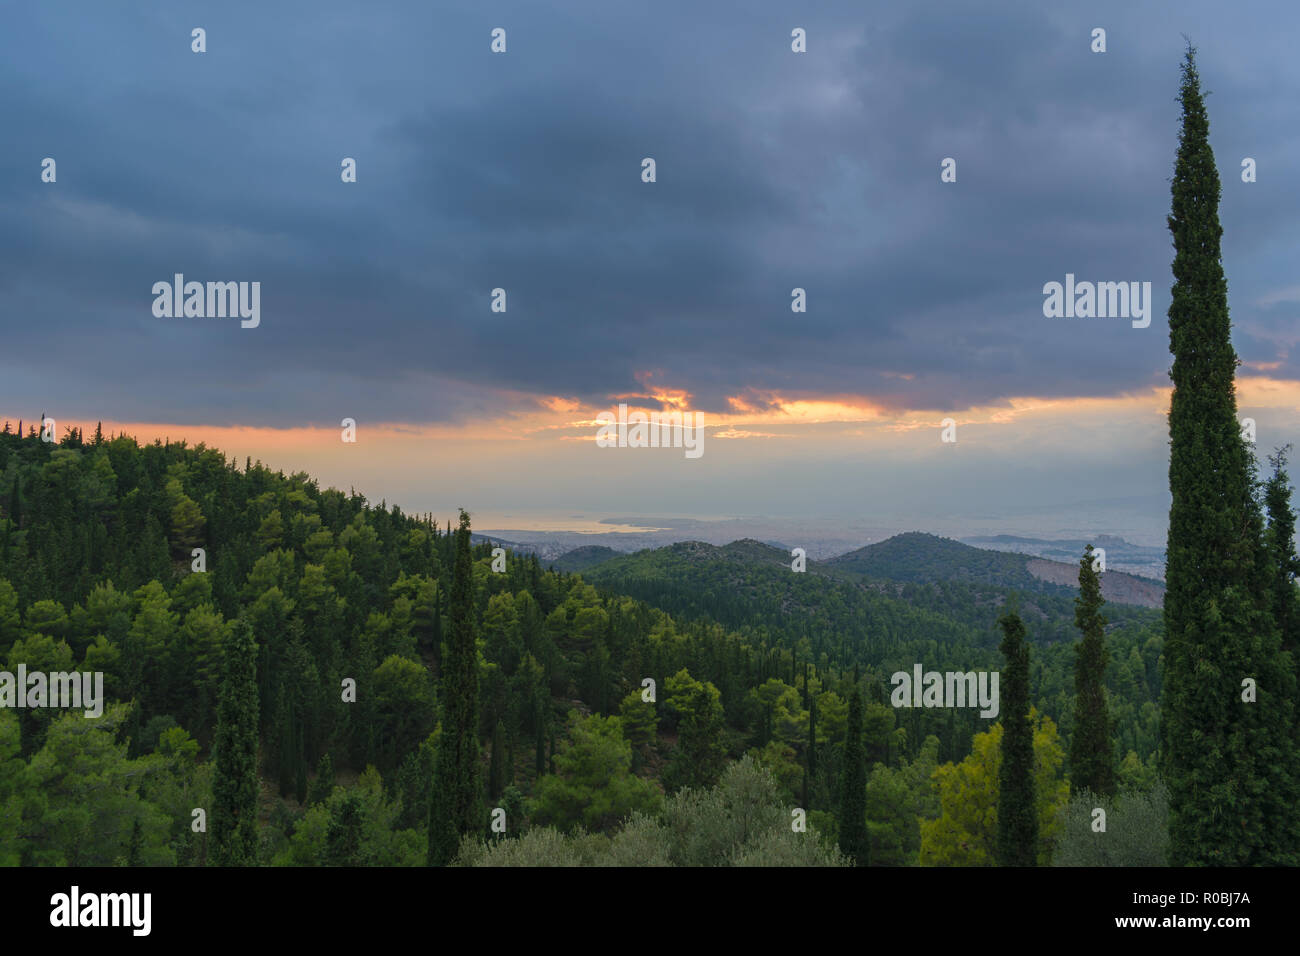 View from mountain Hymettus (Ymittos), Kesariani aesthetic forest on a cloudy day - Stock Image